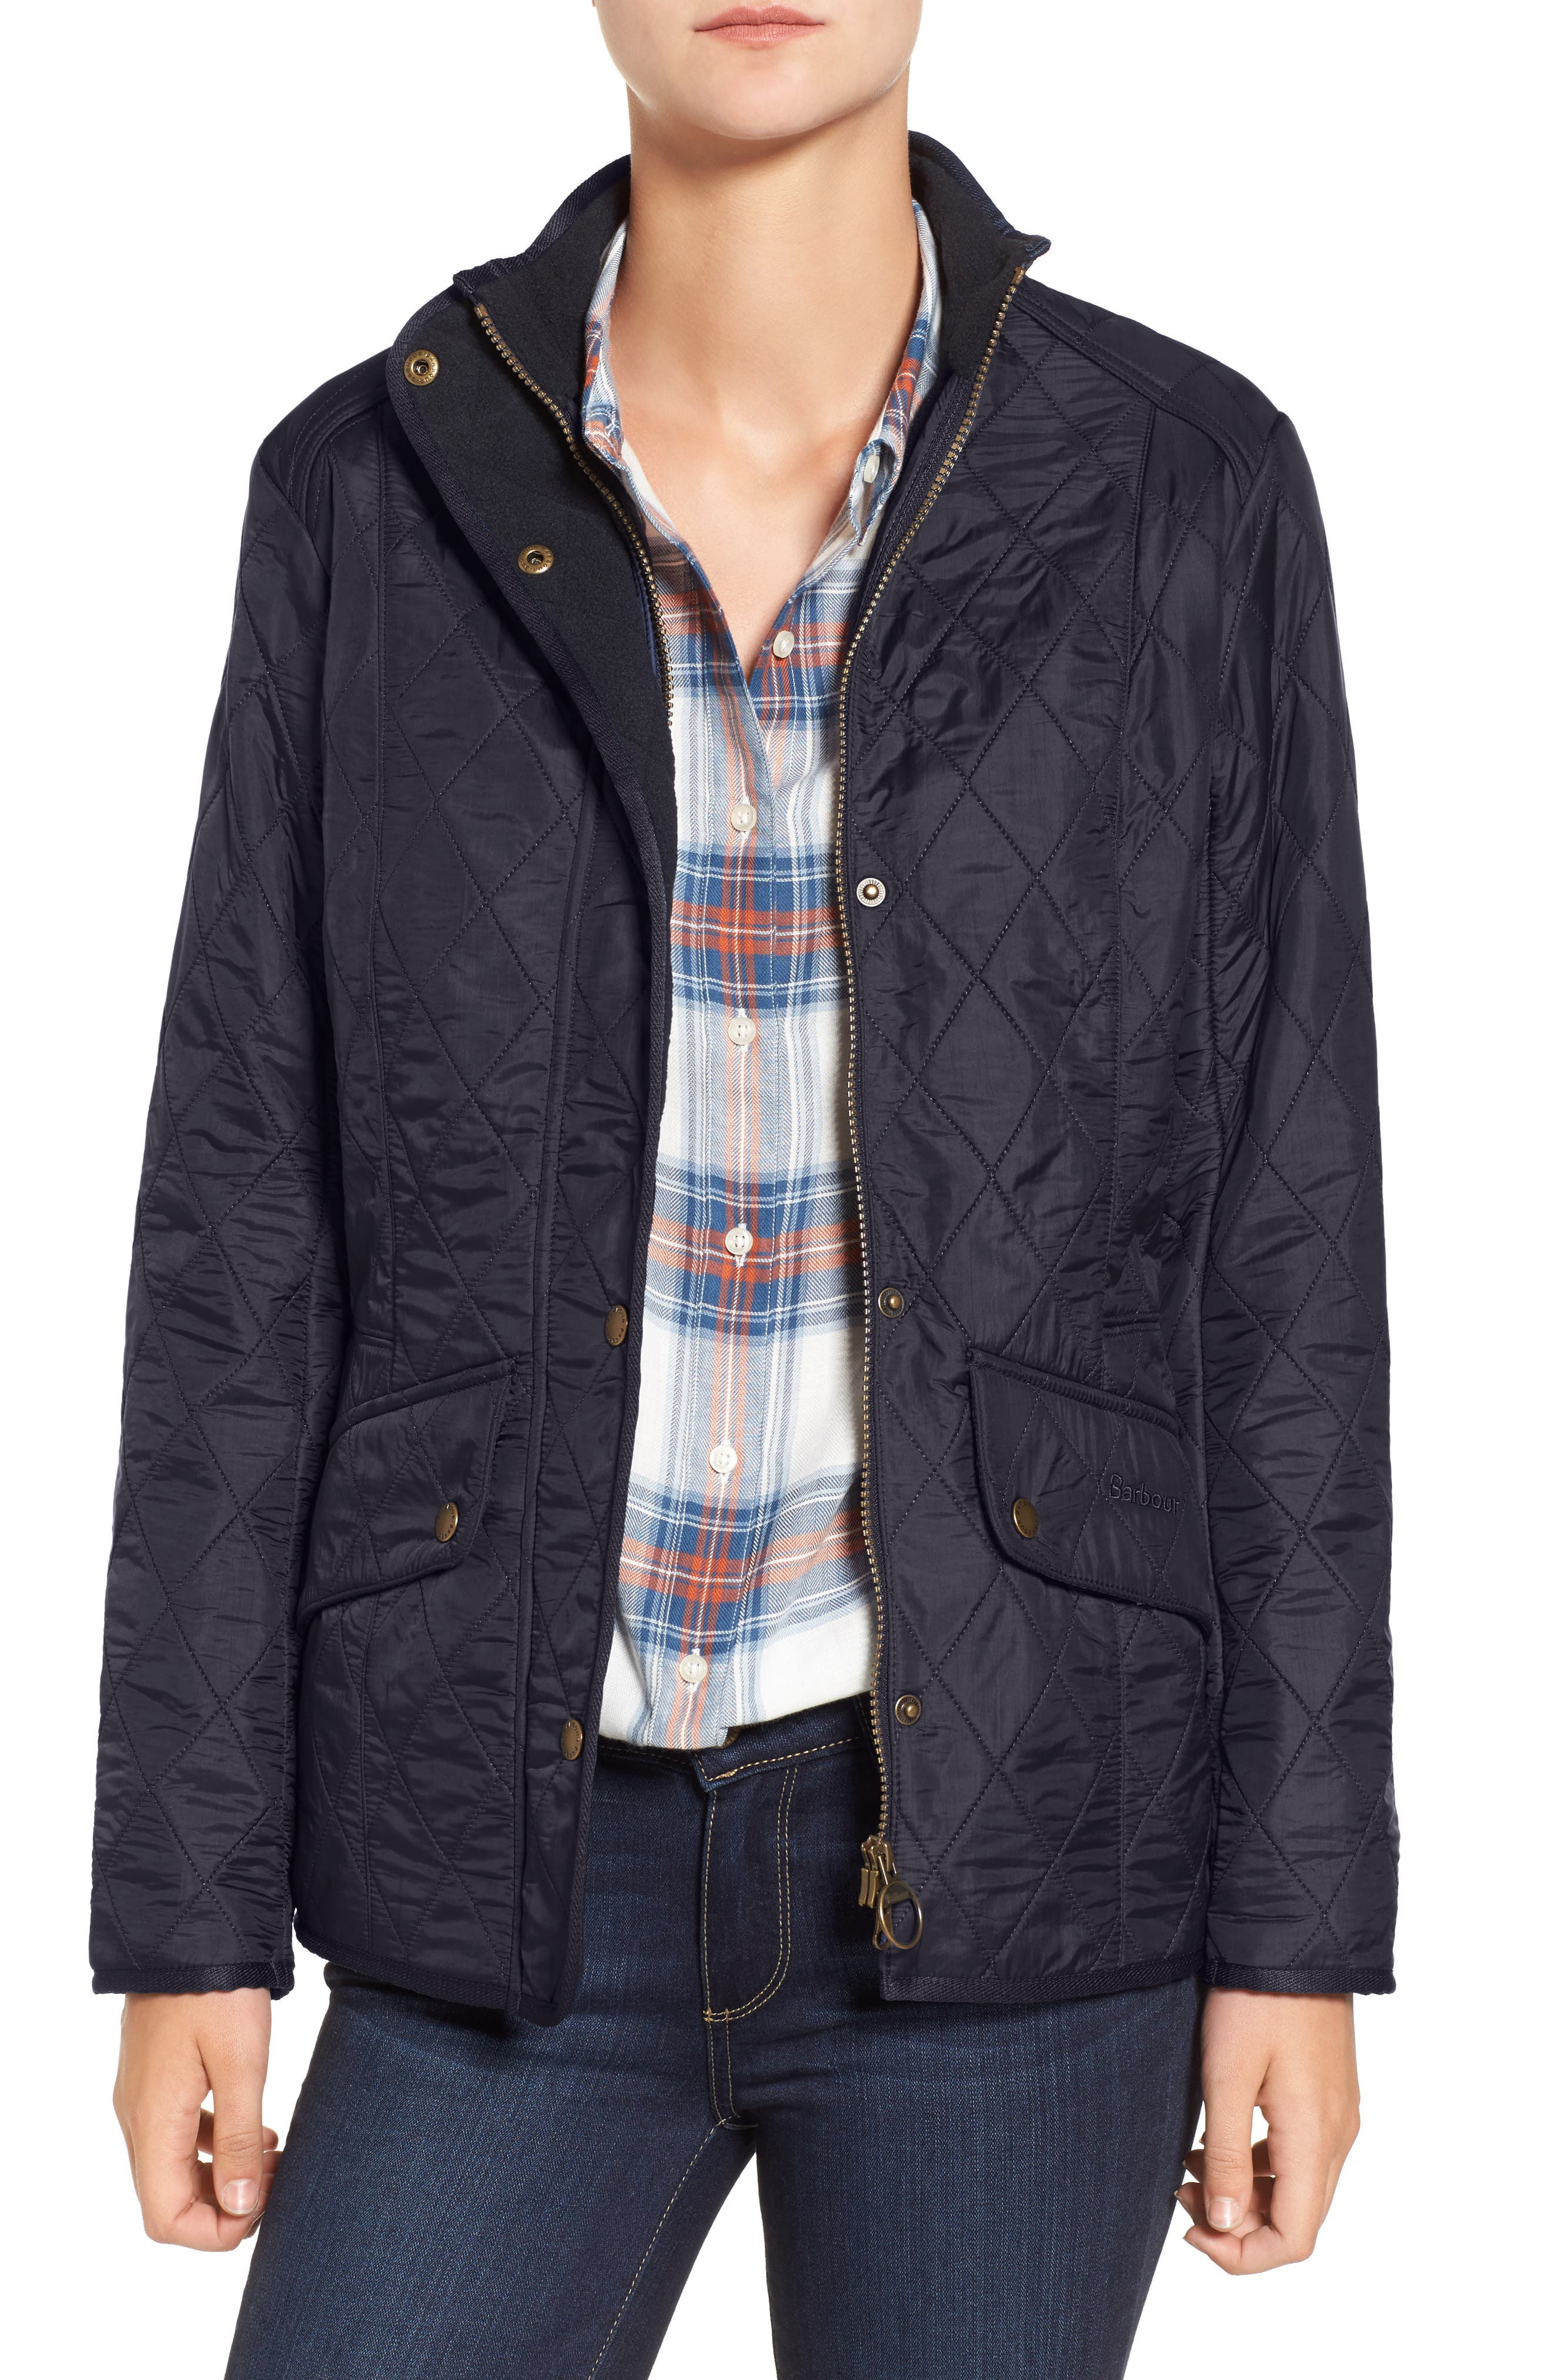 'Cavalry' Quilted Jacket,                             Alternate thumbnail 7, color,                             001